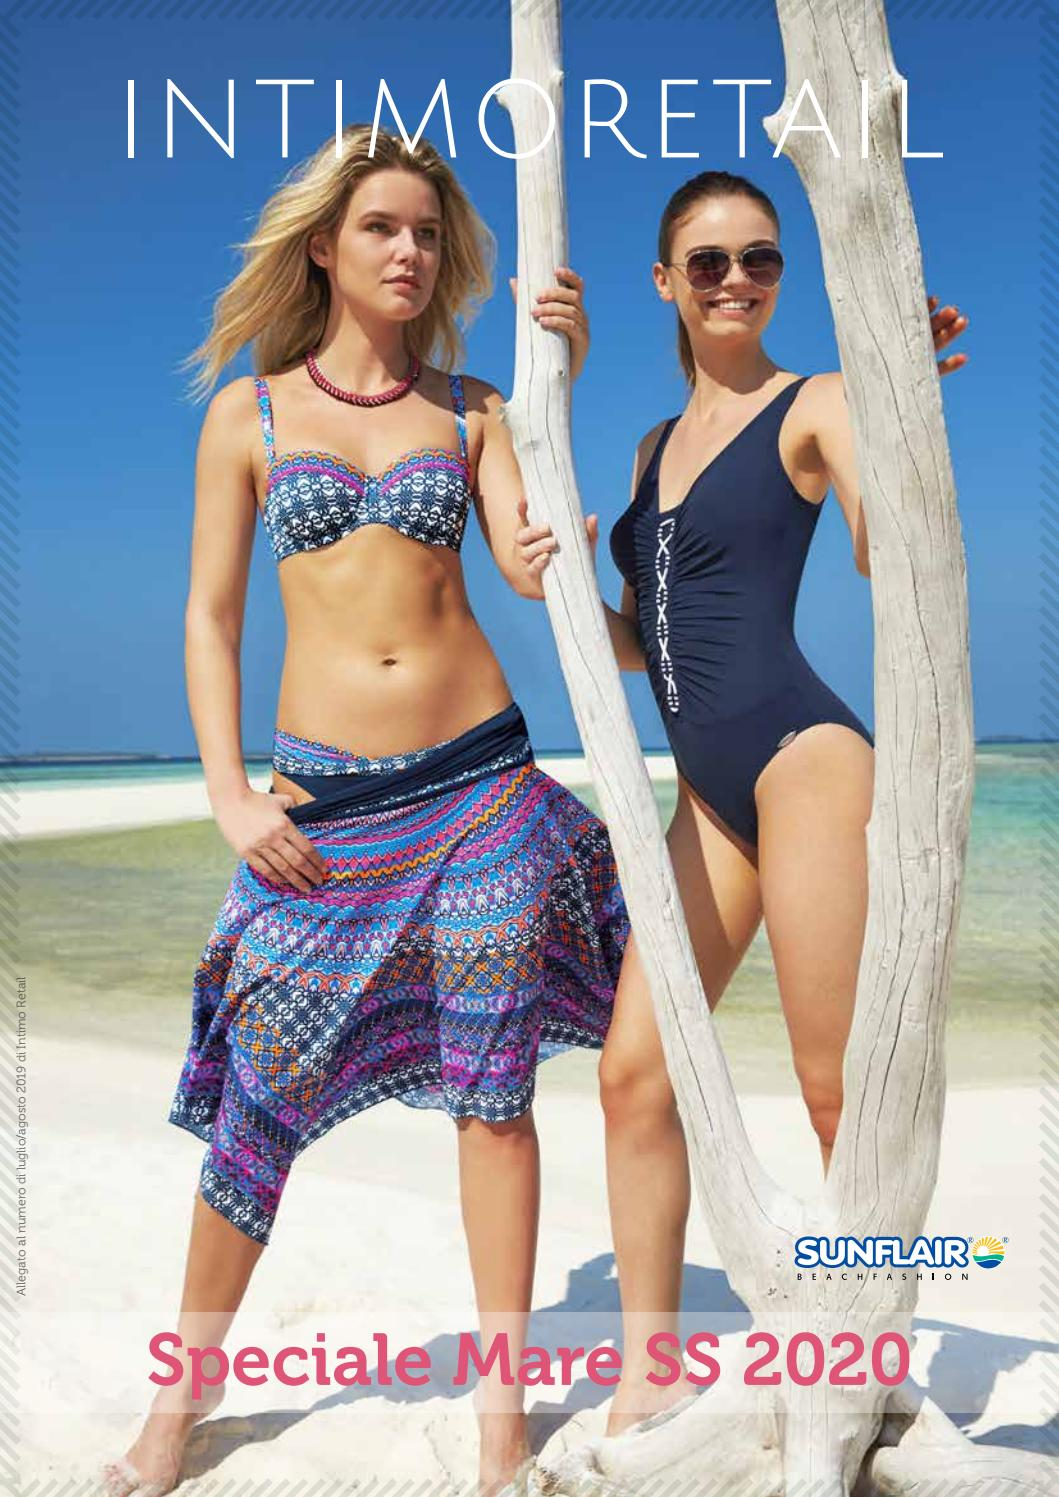 Intimo Retail Speciale Mare Ss 2020 By By Editoriale Farlastrada Issuu